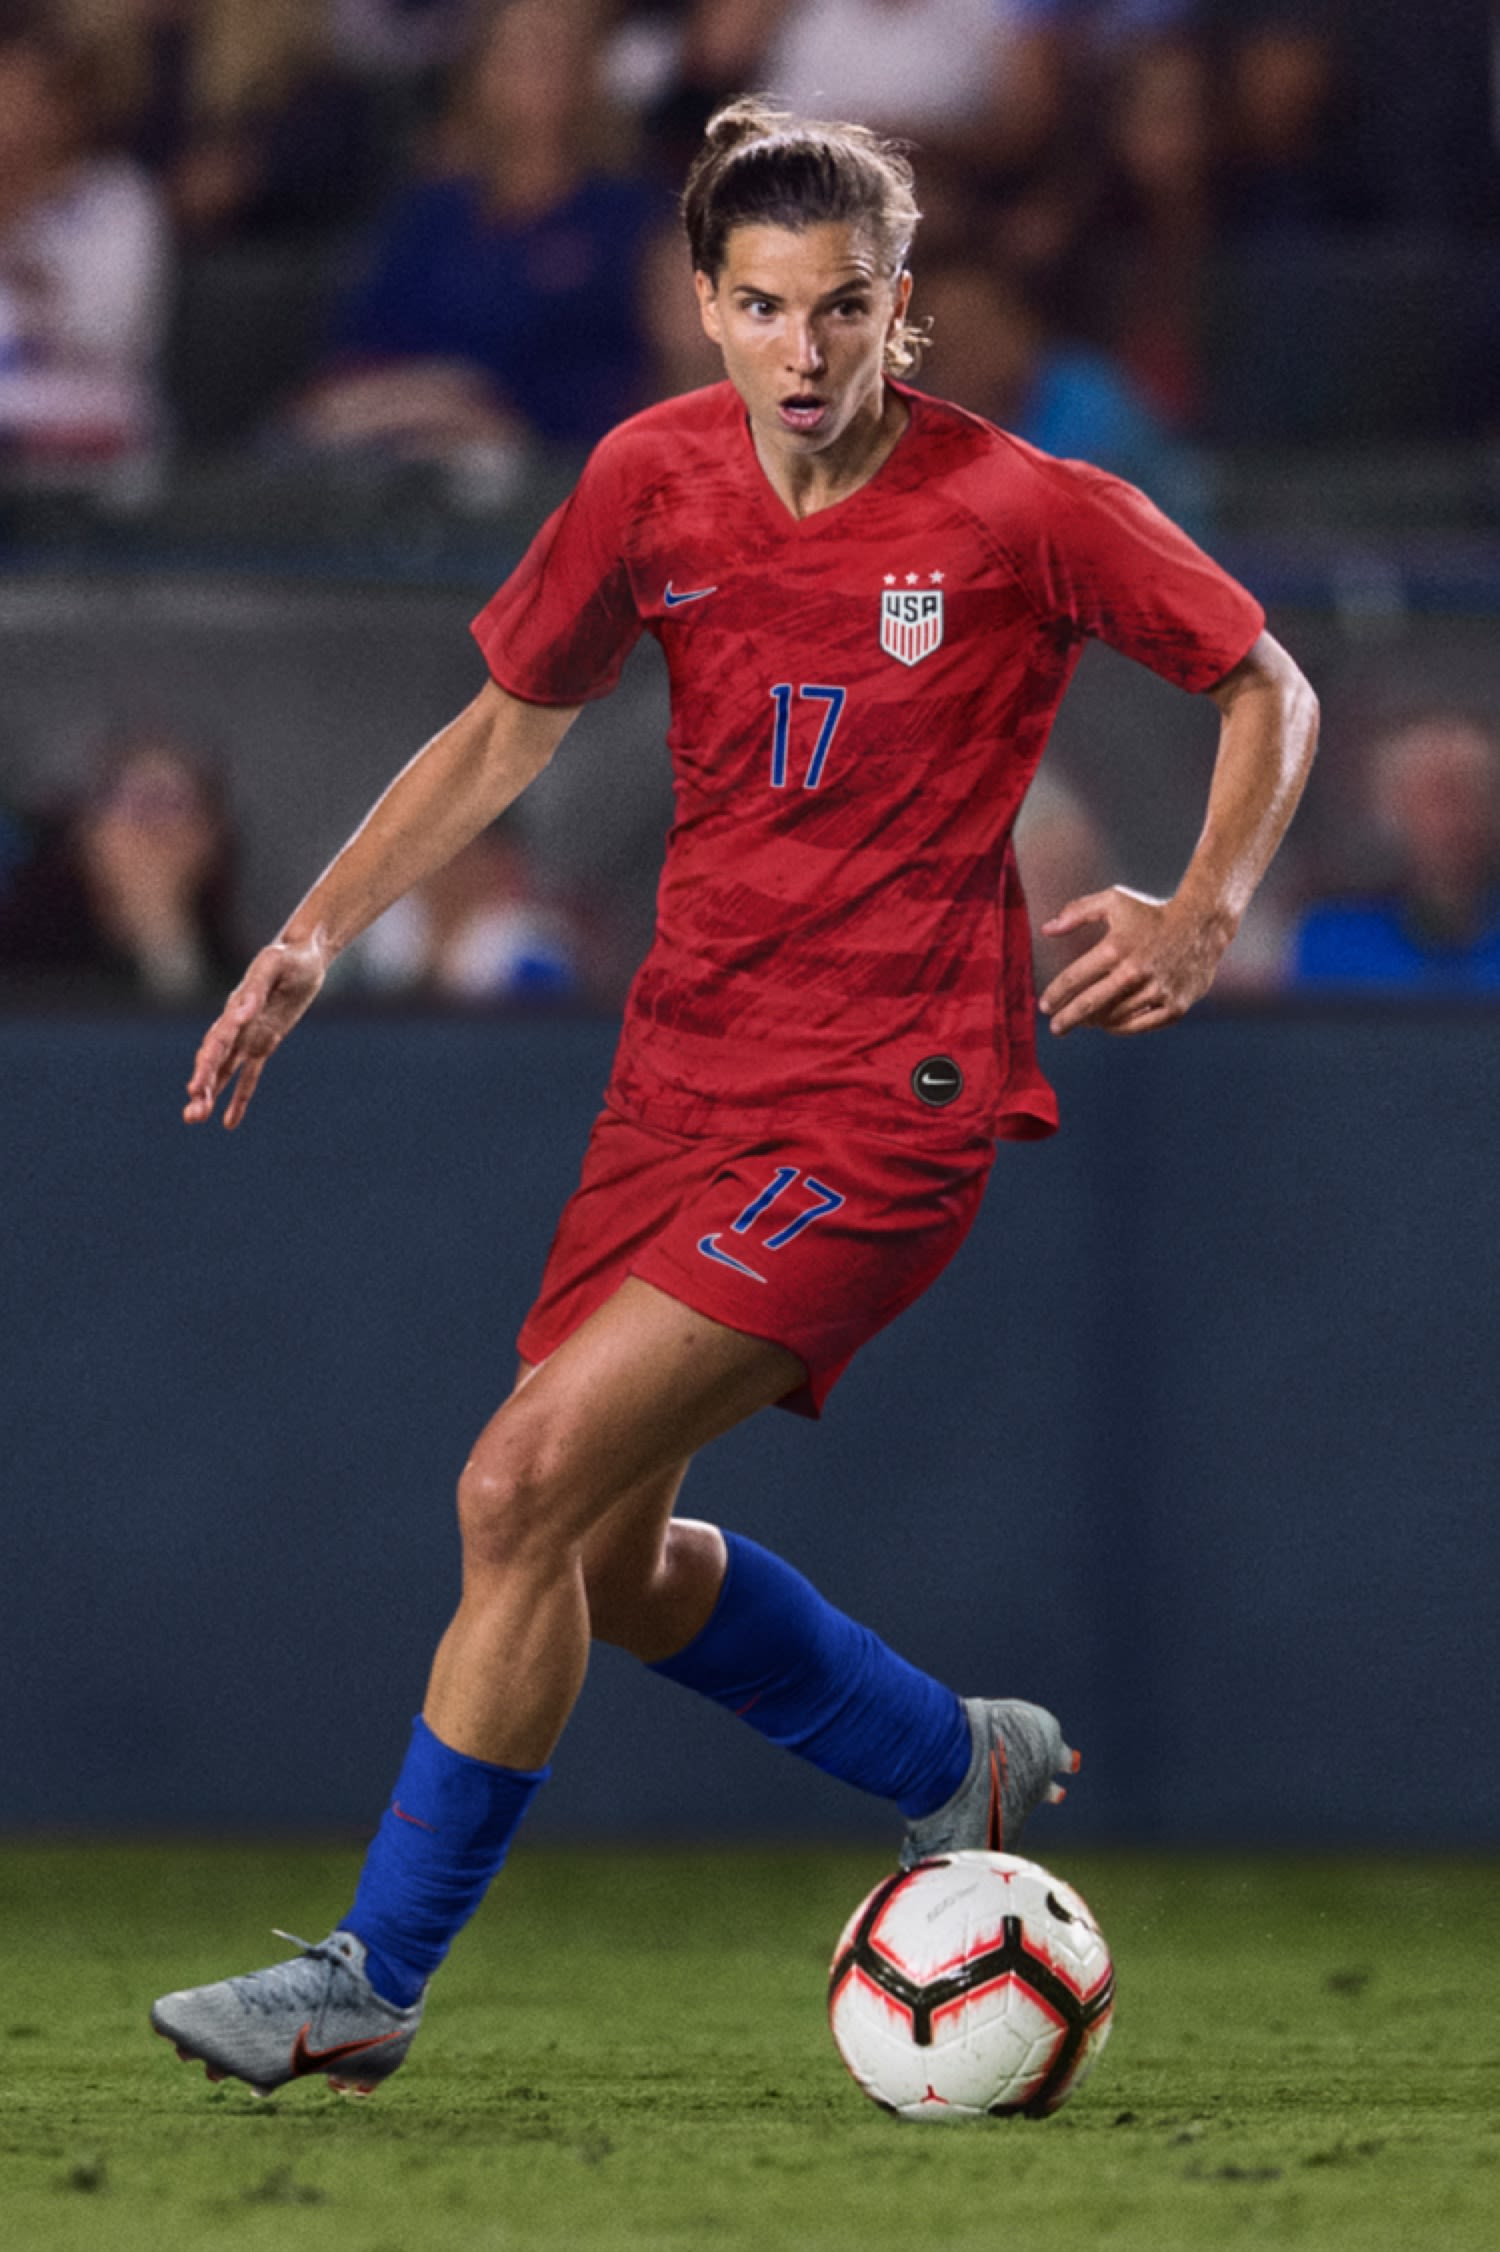 2019 USWNT Stadium Away Jersey